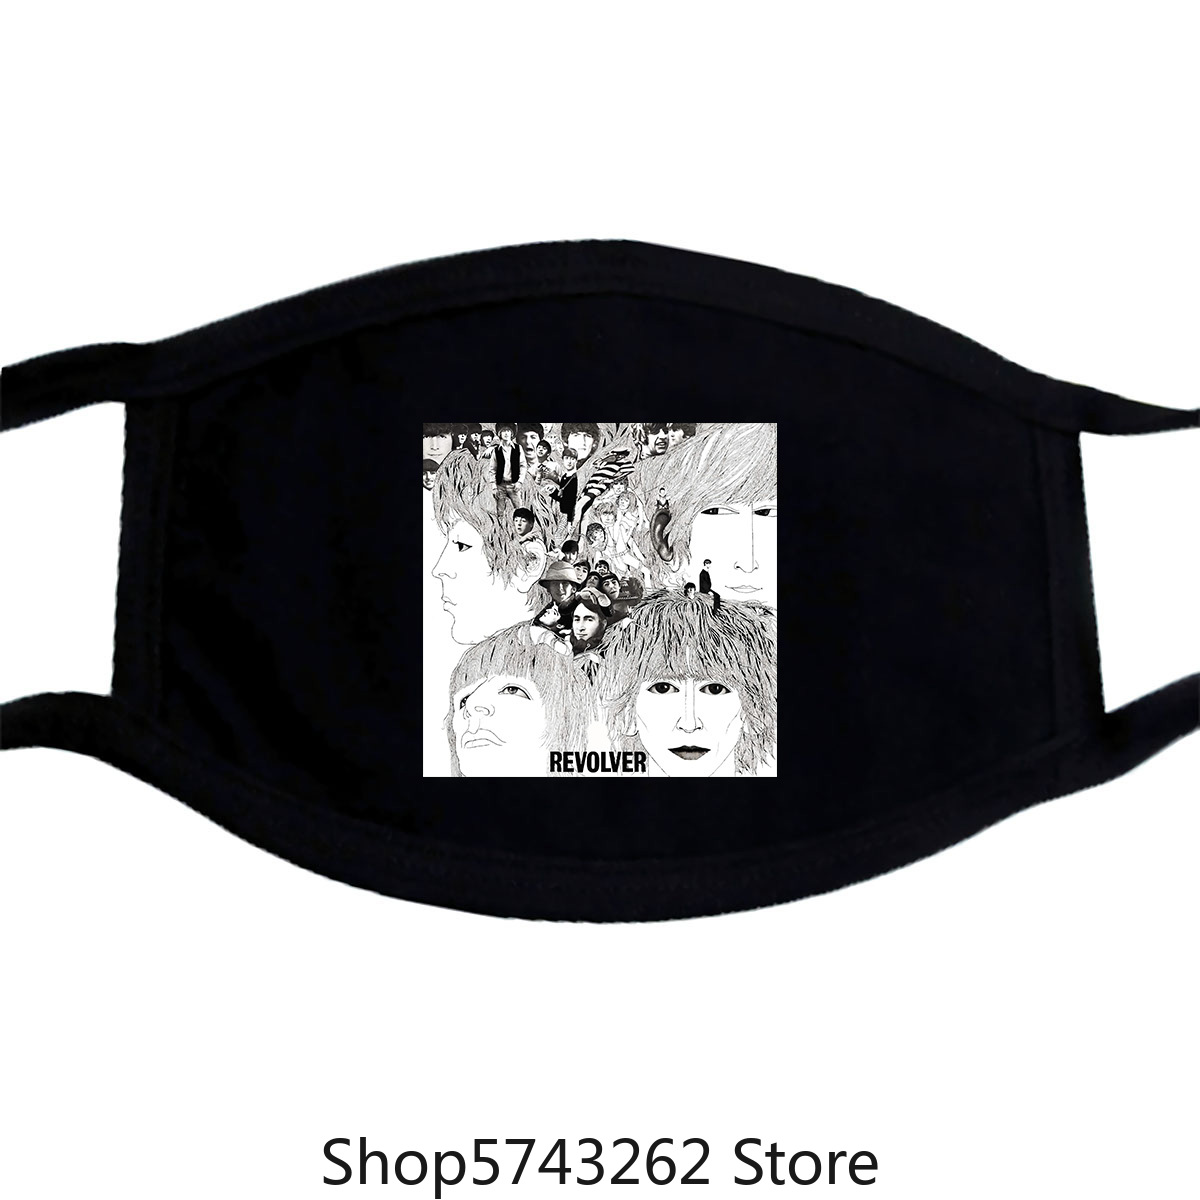 The Tee Fashion Beatle_S Cool Album Cover Mask-New Washable Reusable Mask